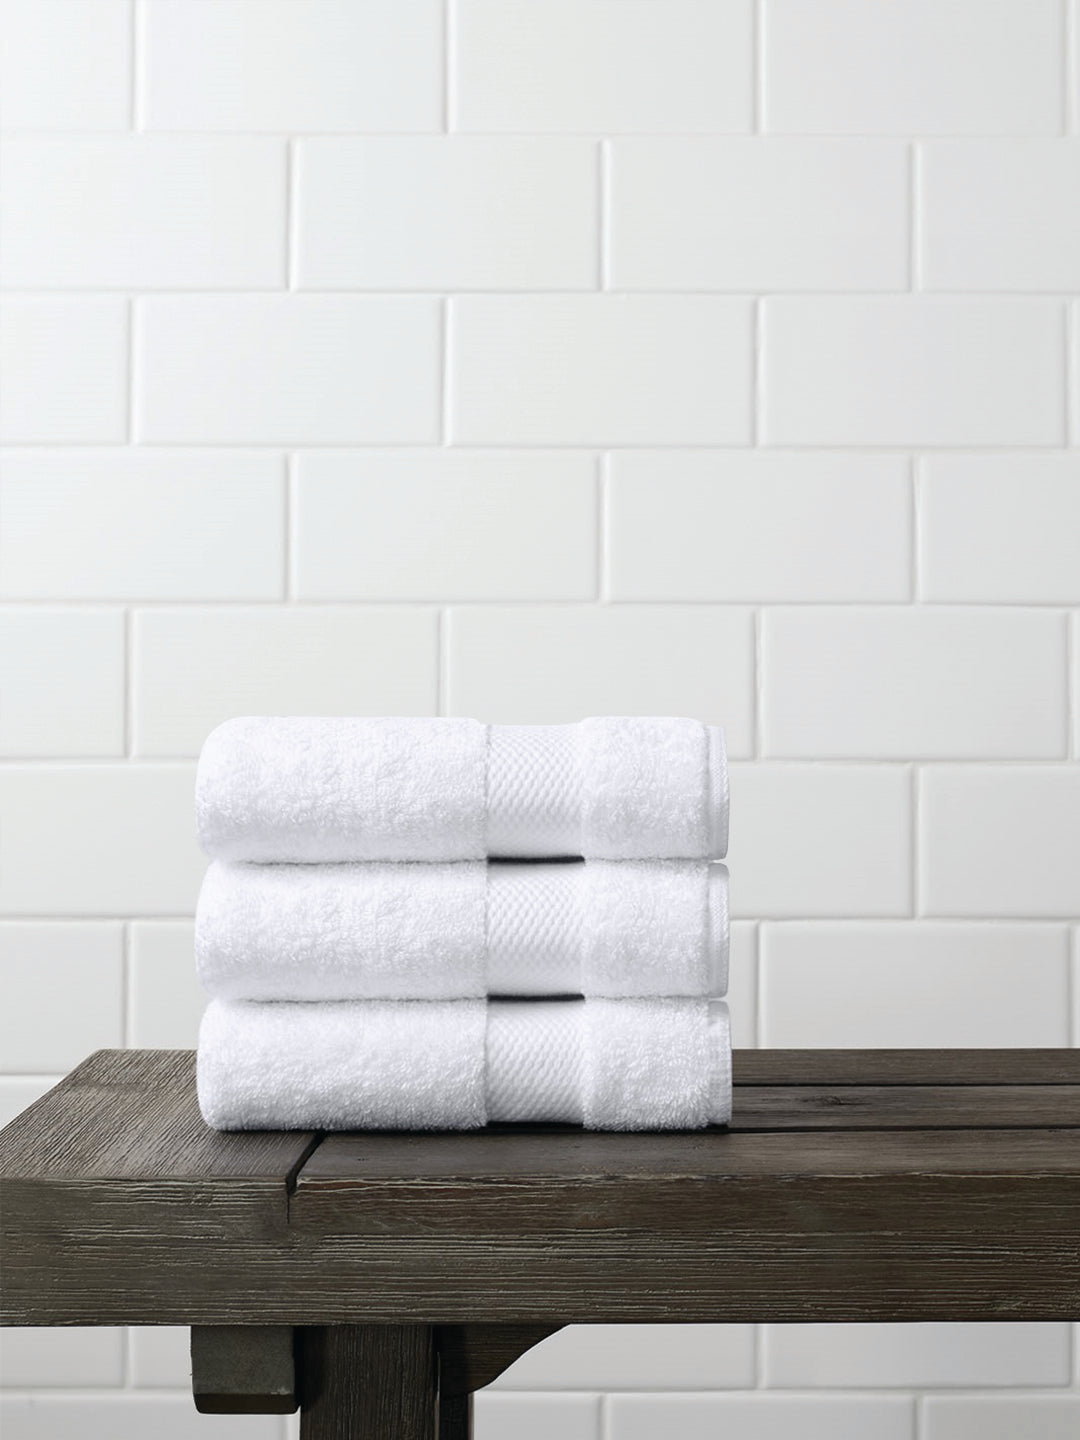 Face Towels (Set of 3) Organic Cotton - White